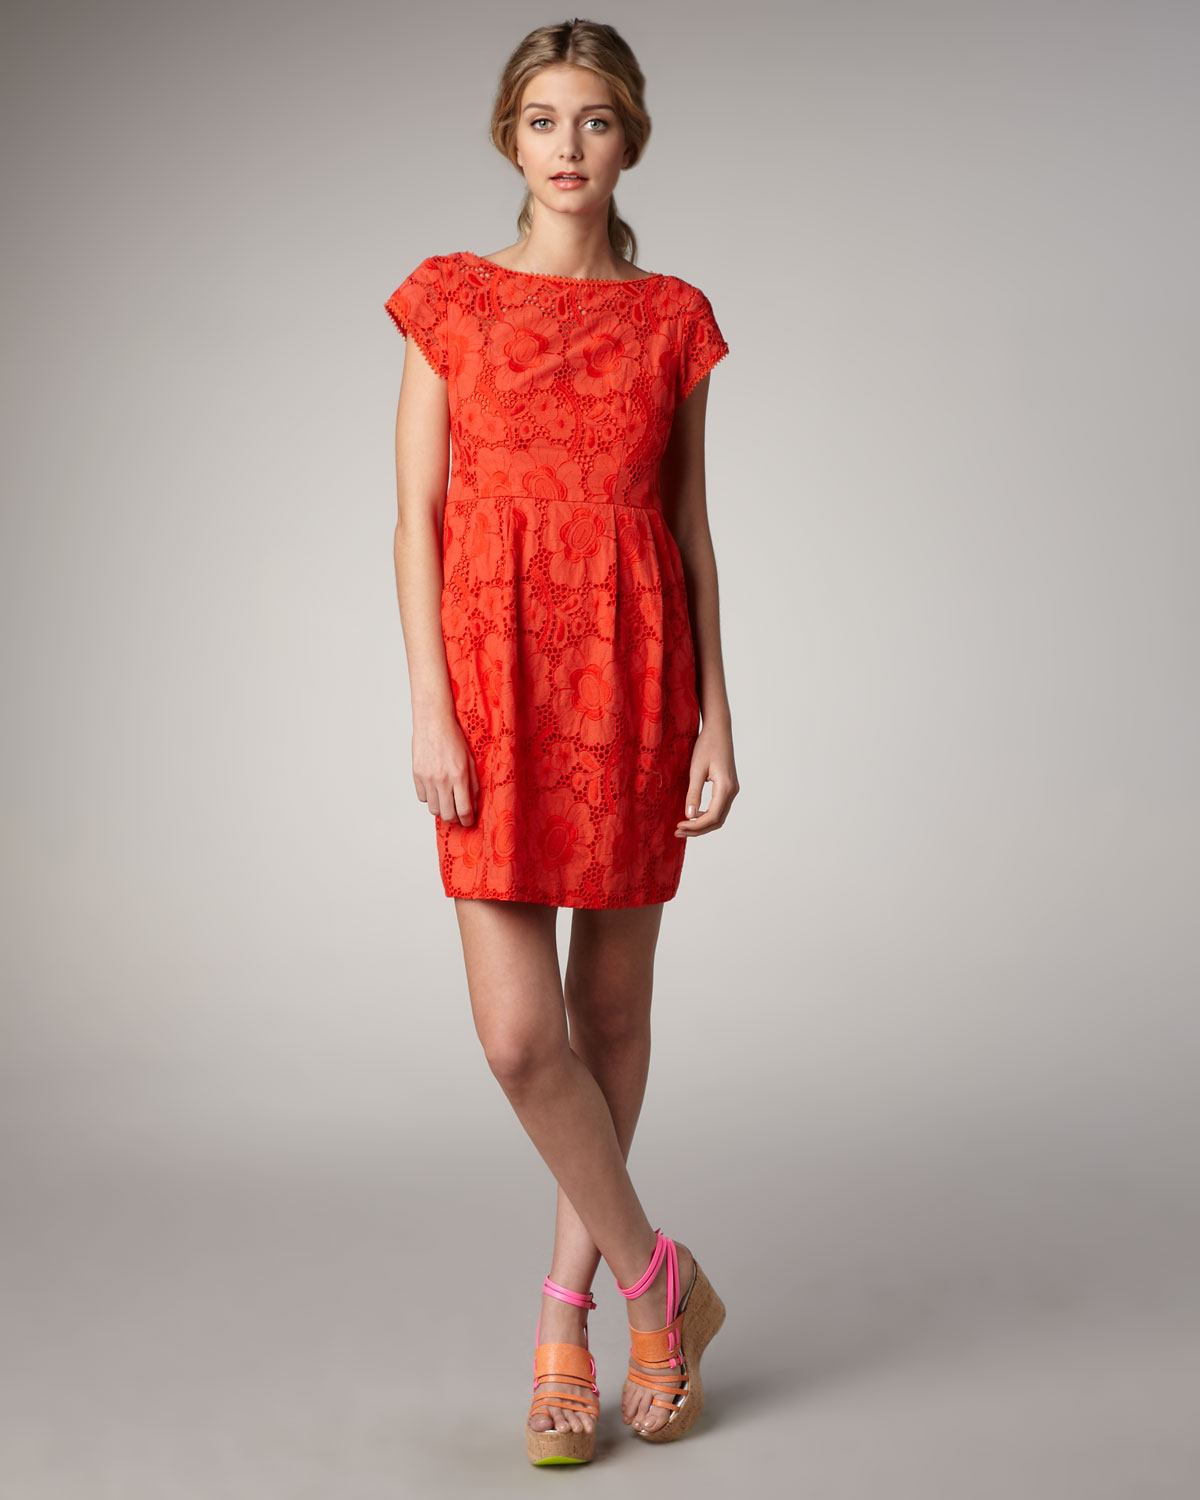 Nanette lepore Vamos Lace Dress in Red | Lyst